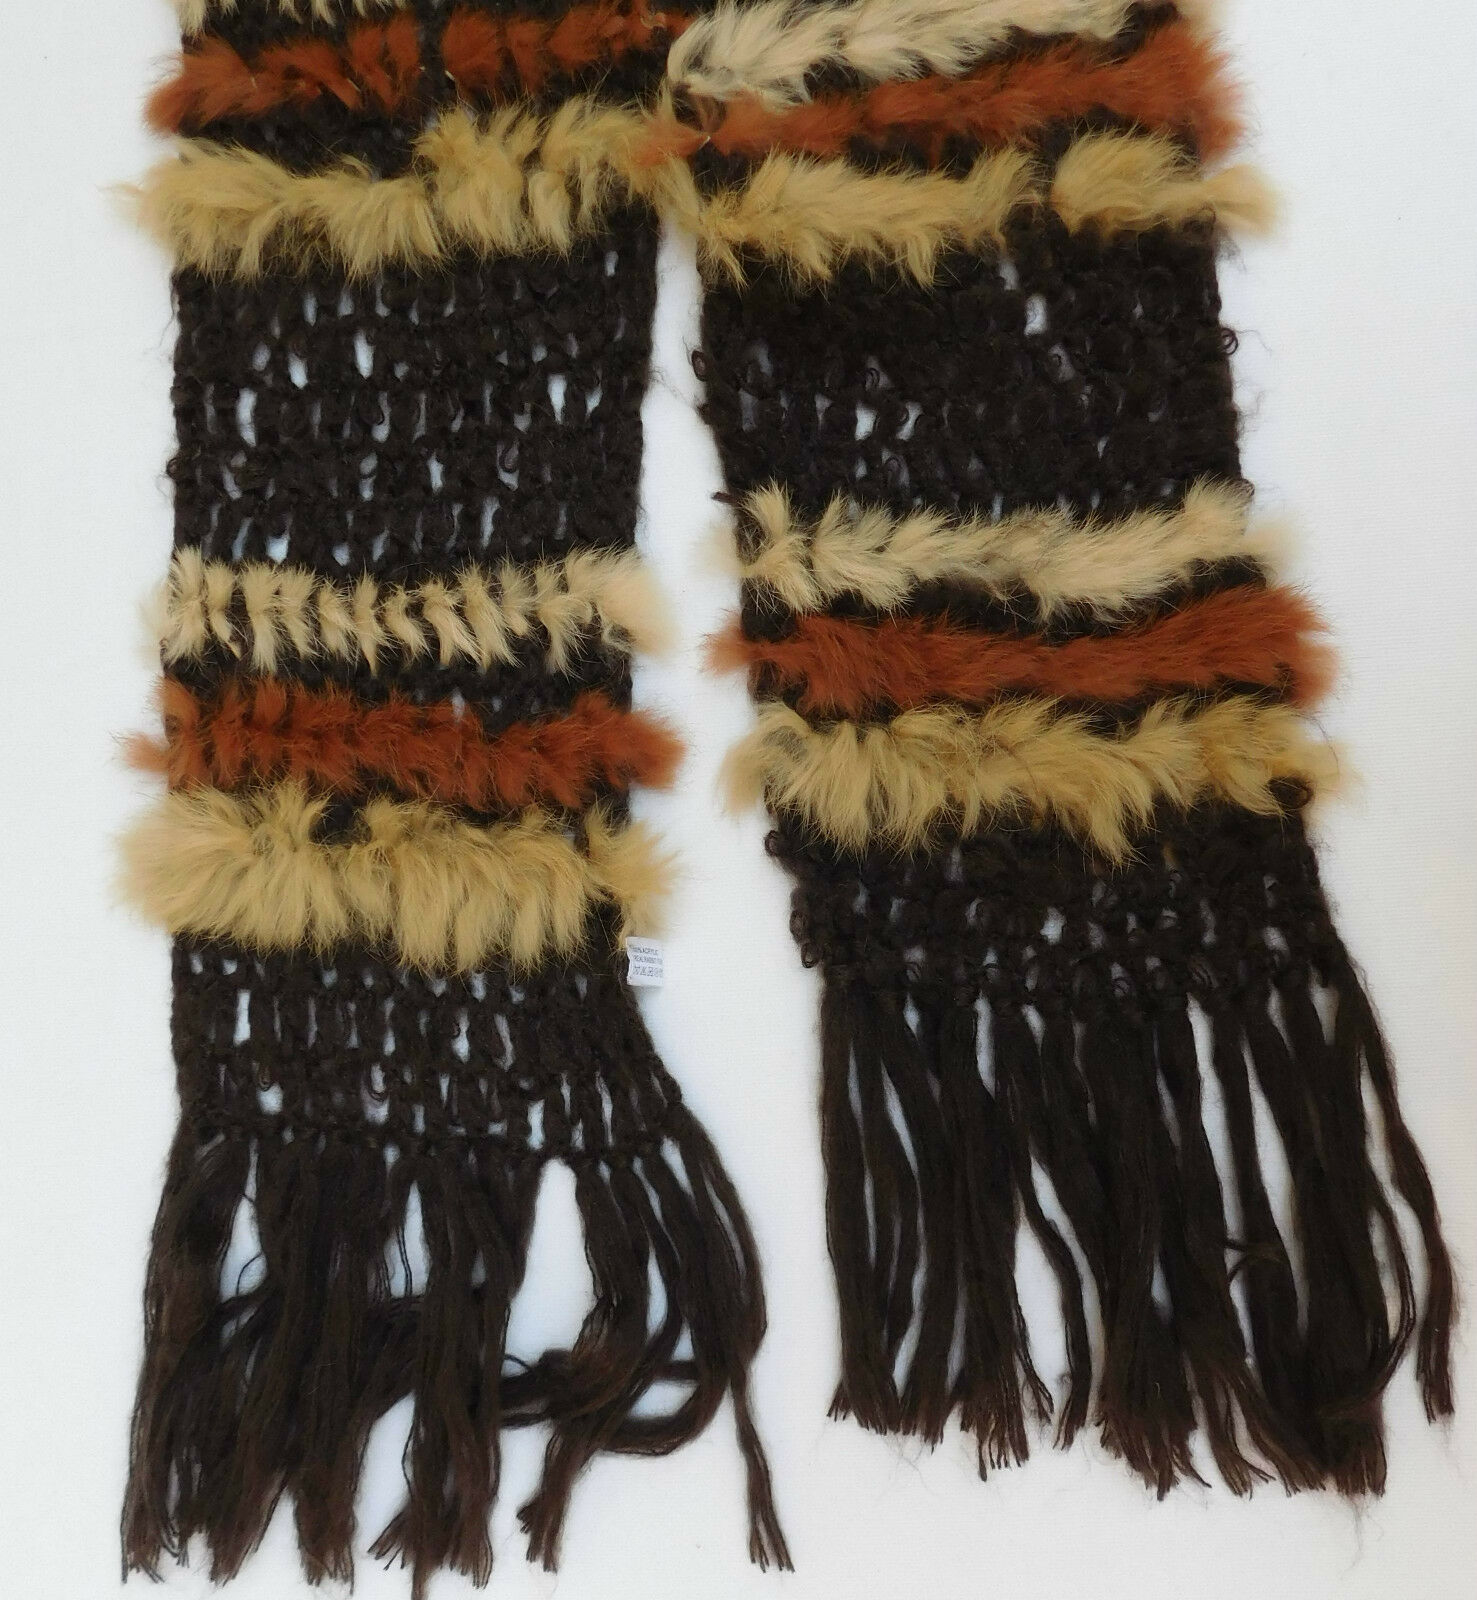 Soft fringed ladies scarf with rabbit fur trim 90 inch long brown striped